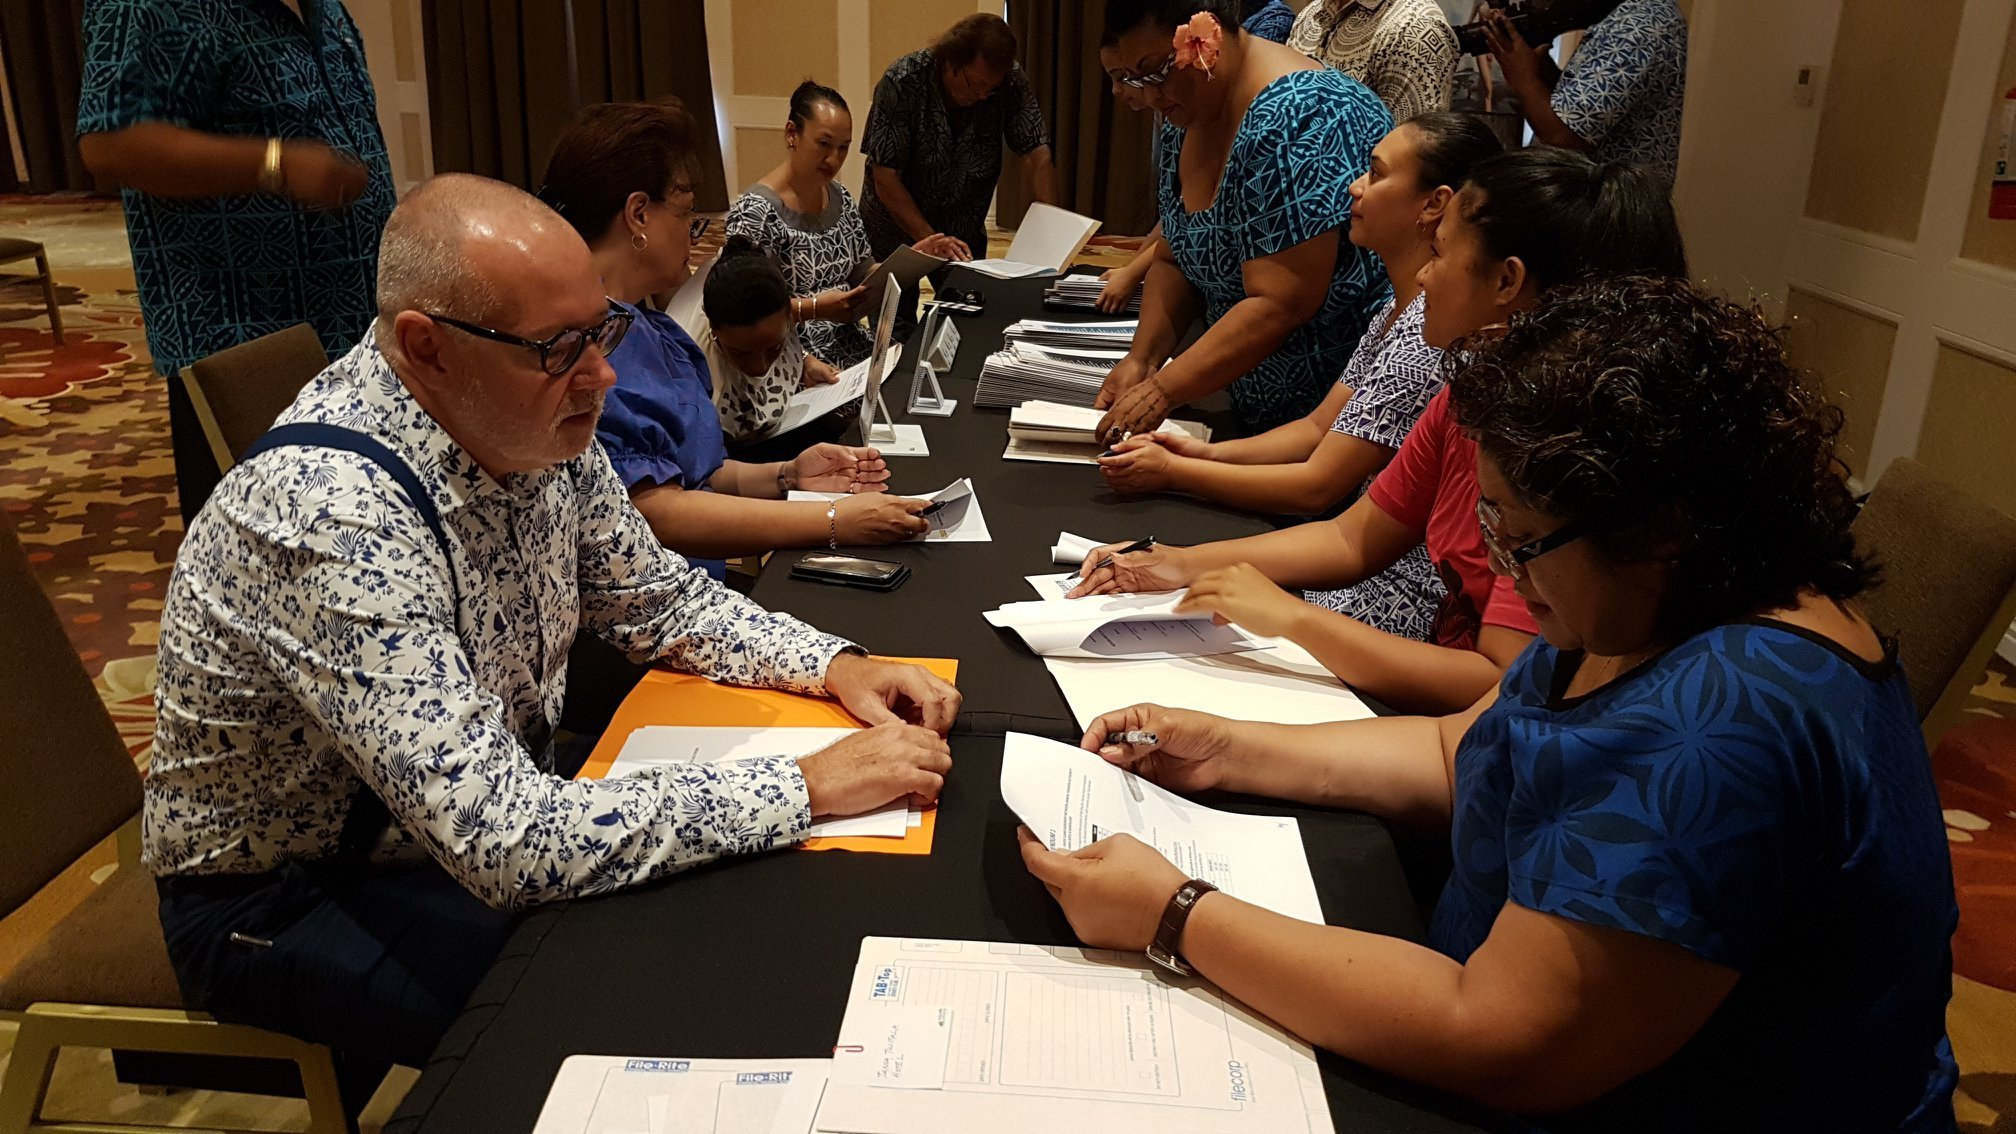 The event to mark the signing of the Memorandum of Agreement to ensure there is enough accommodation available in Samoa for next year's Pacific Games was well attended ©Samoa 2019 Pacific Games/Facebook